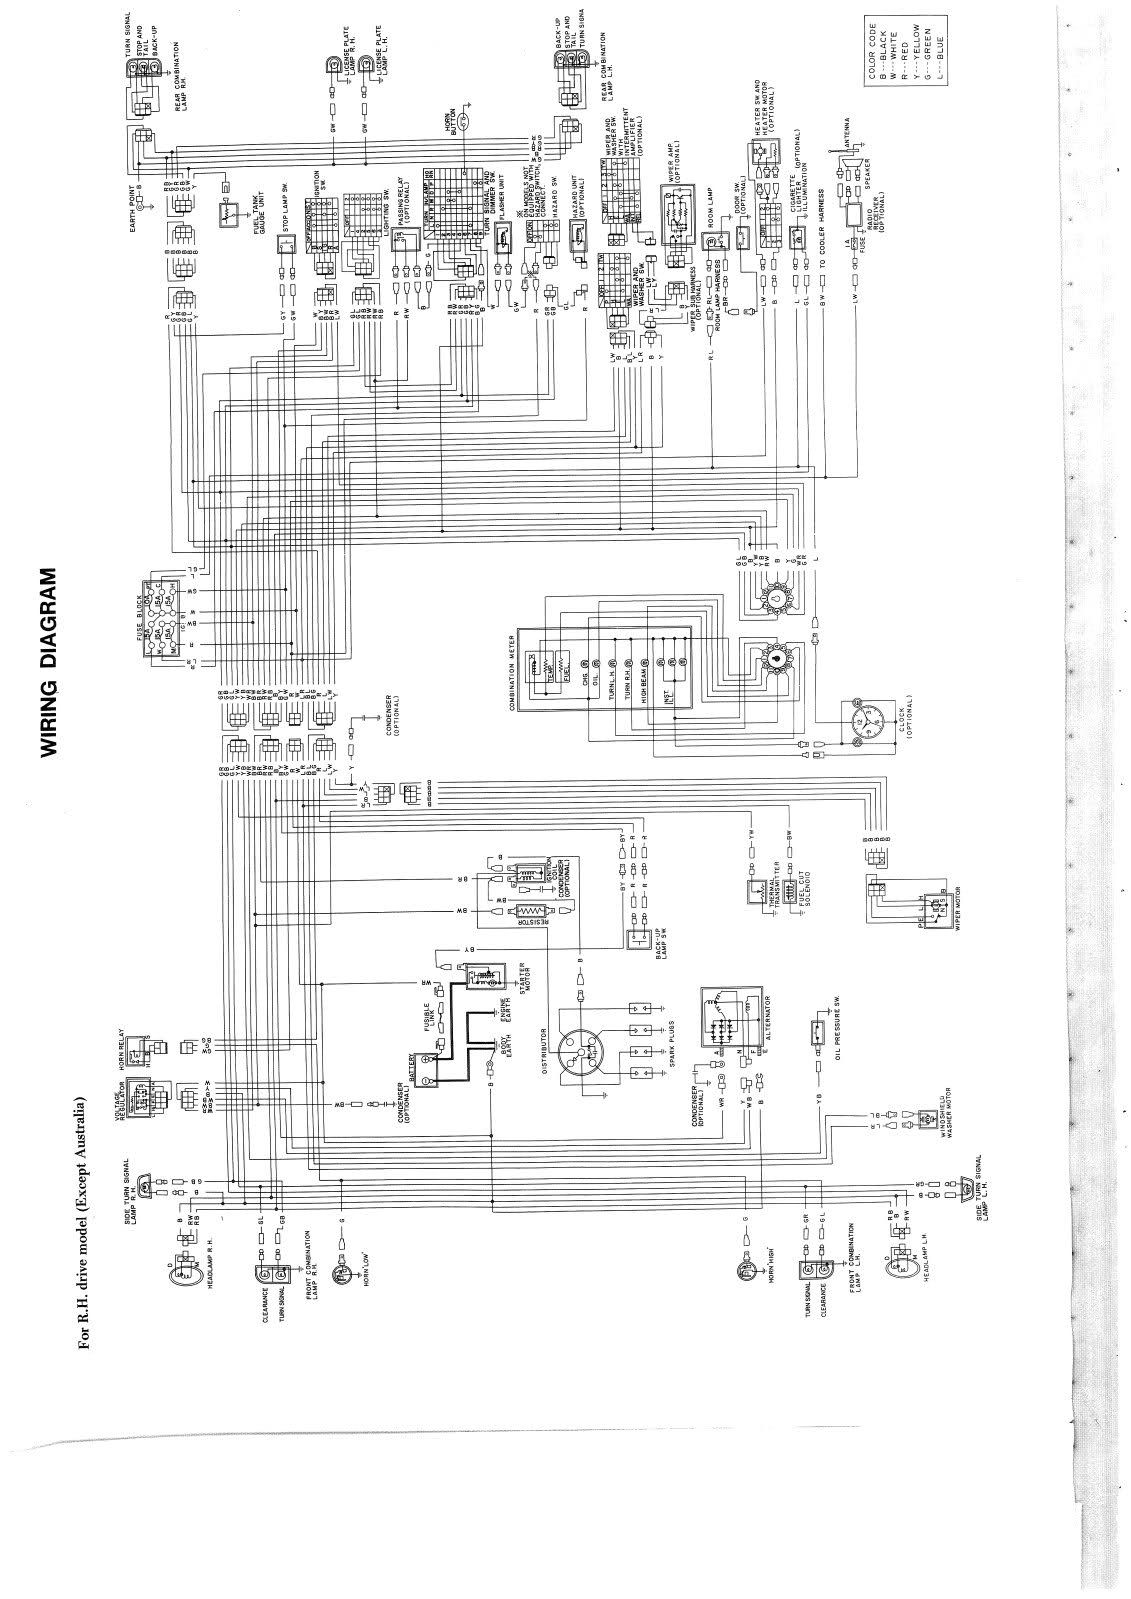 hight resolution of wiring diagram for nissan 1400 bakkie 6